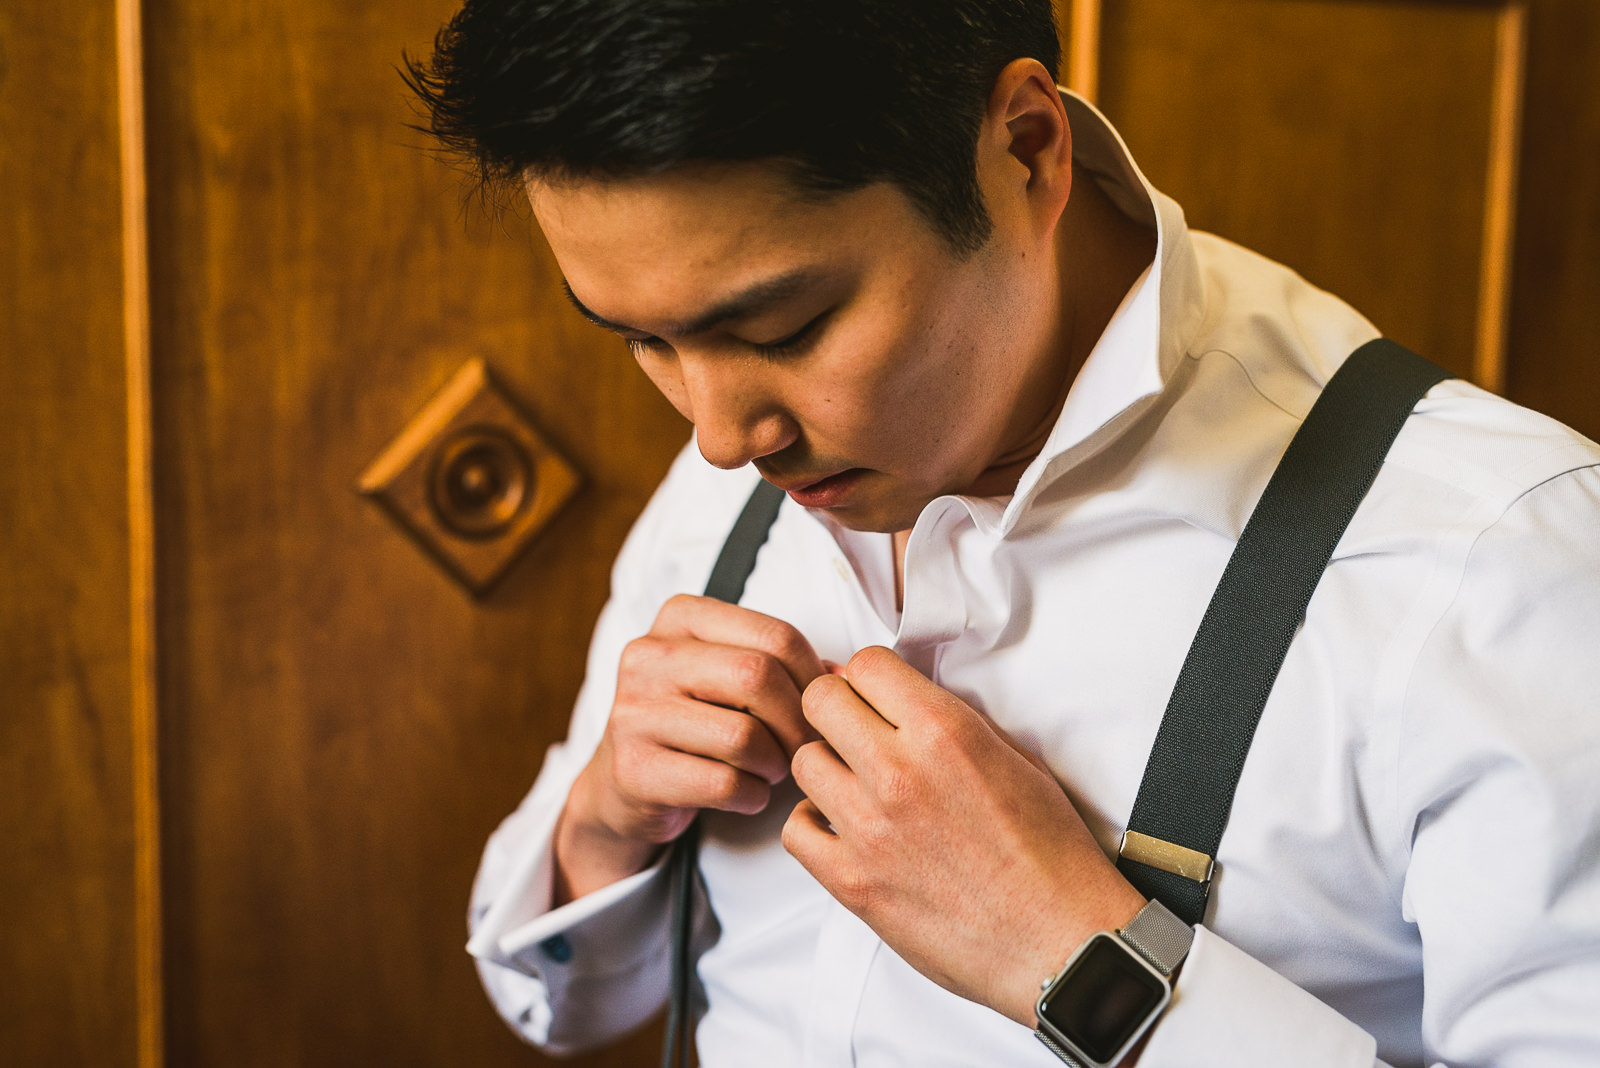 06 groom details at wedding - Rebecca + Doha // Wedding Photos at Room 1520 Chicago